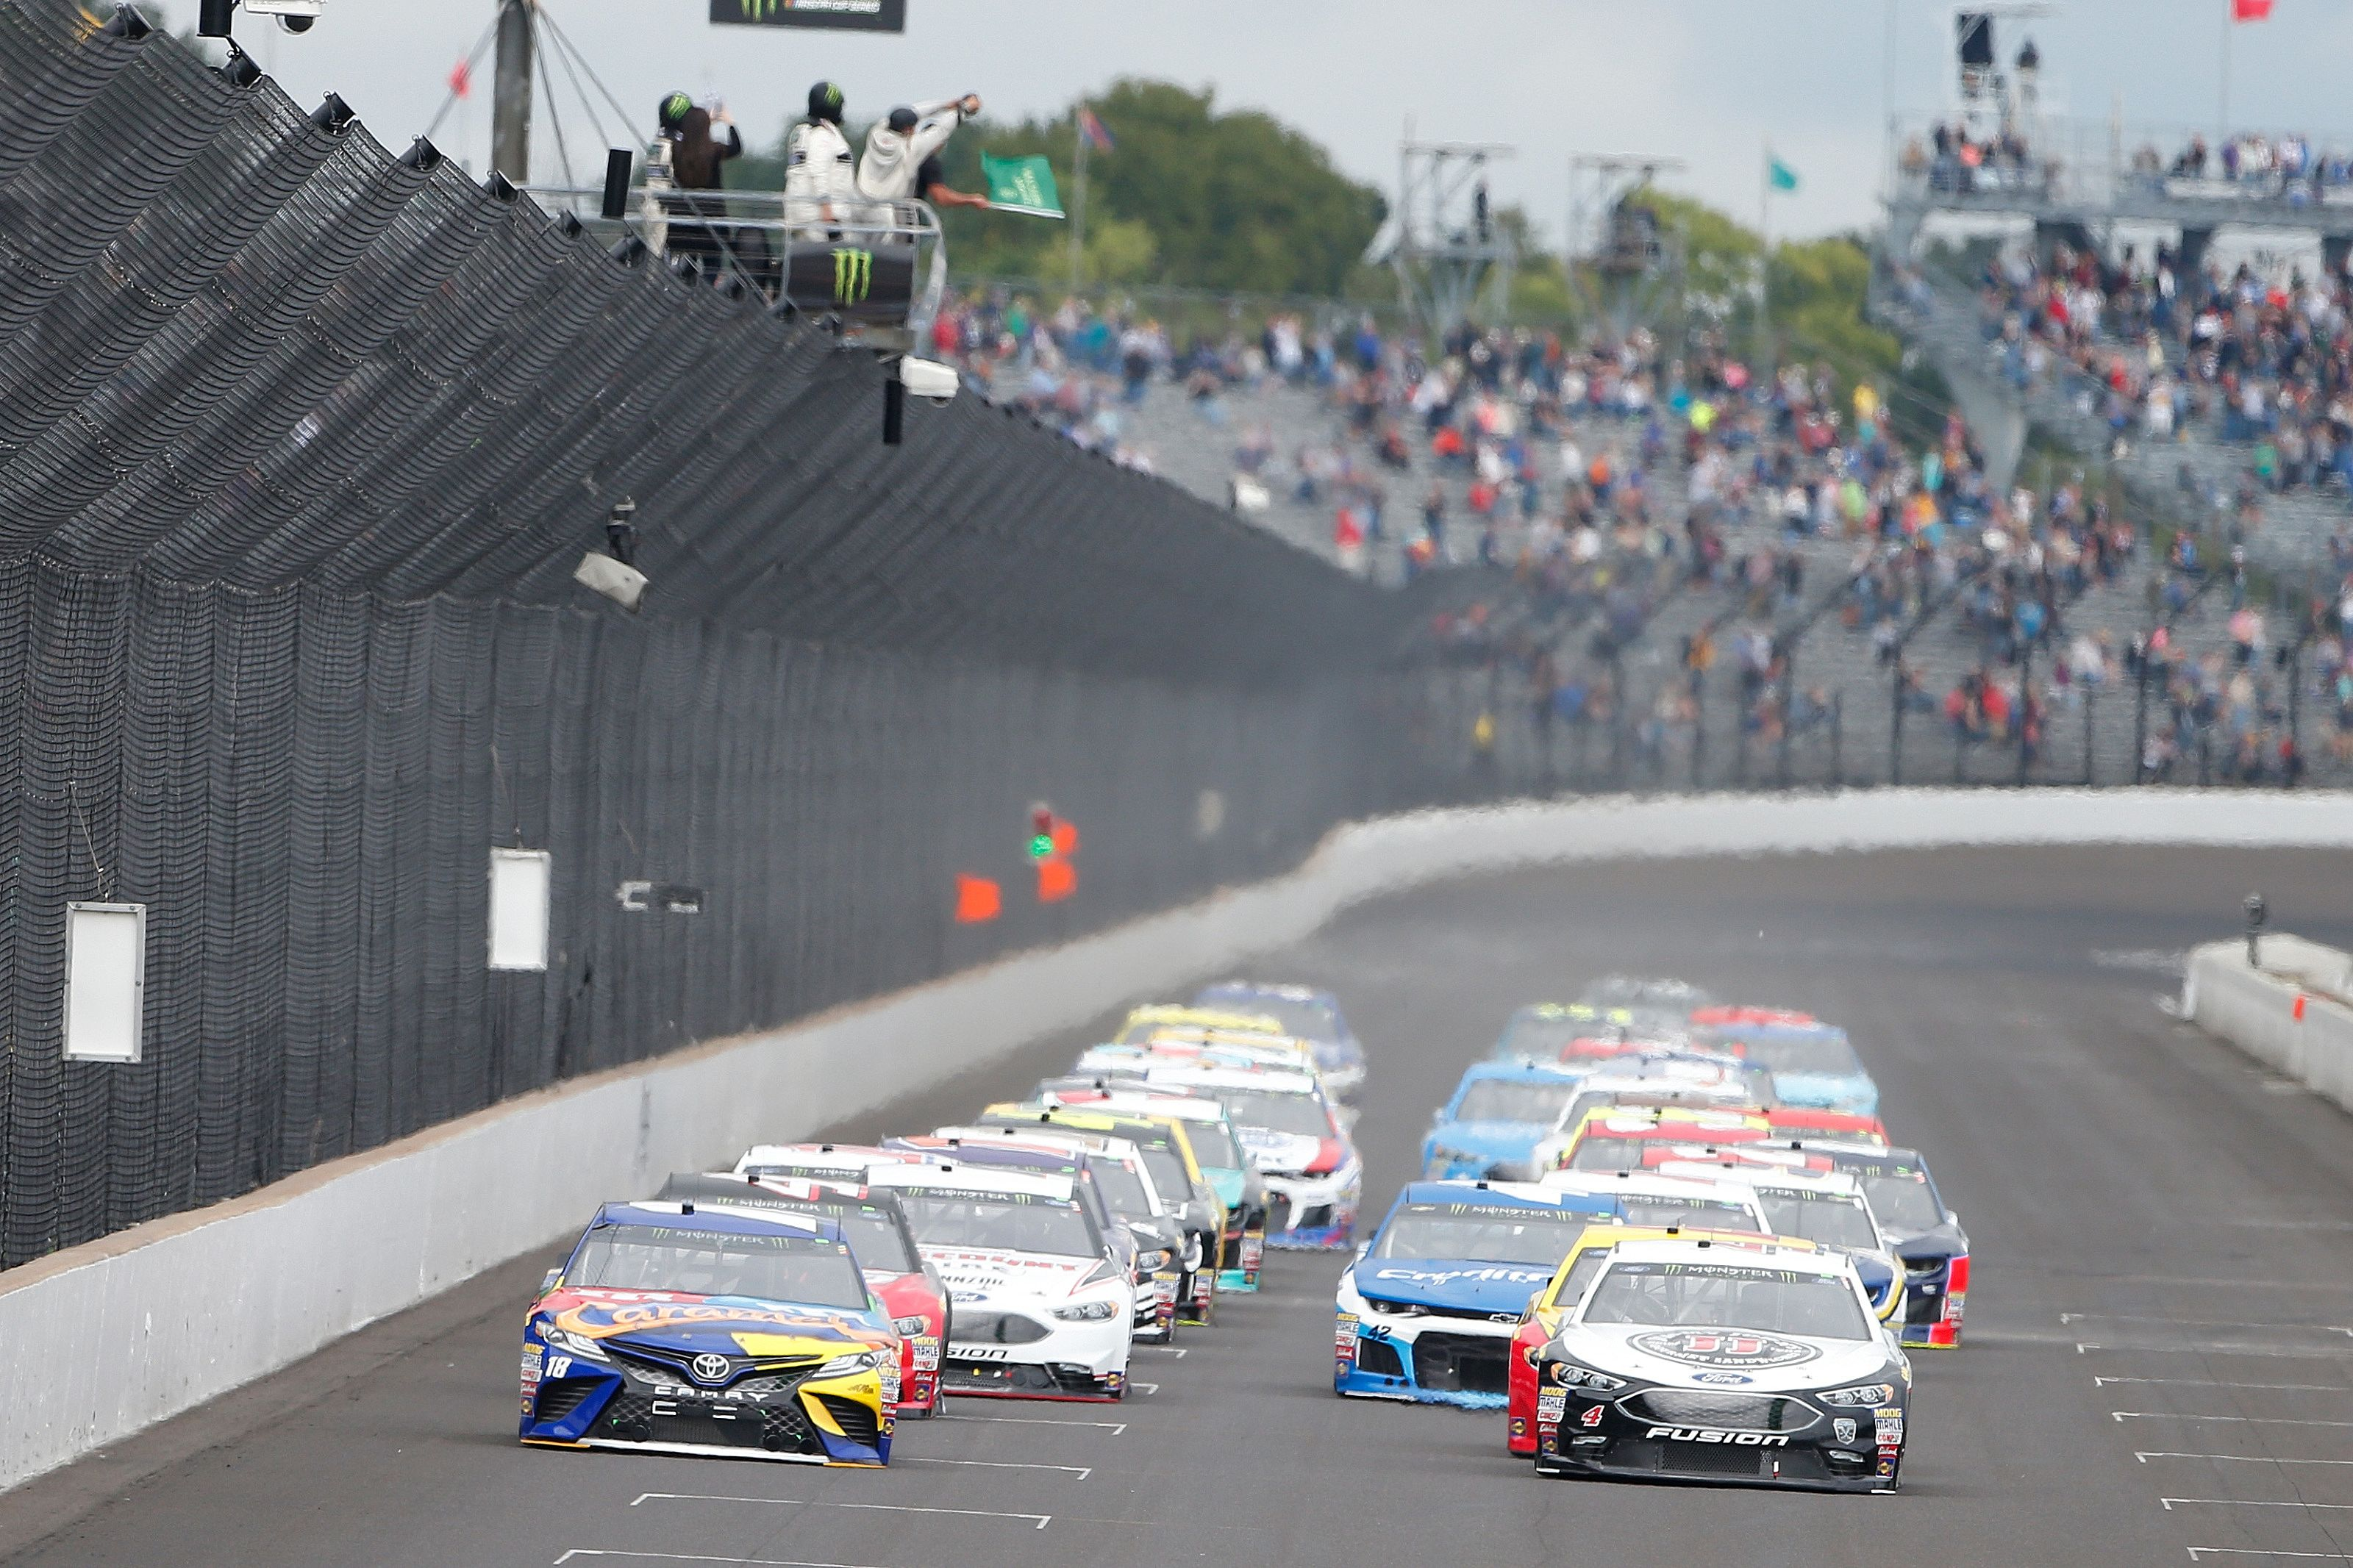 Monster Energy NASCAR Cup Series Big Machine Vodka 400 at the Brickyard